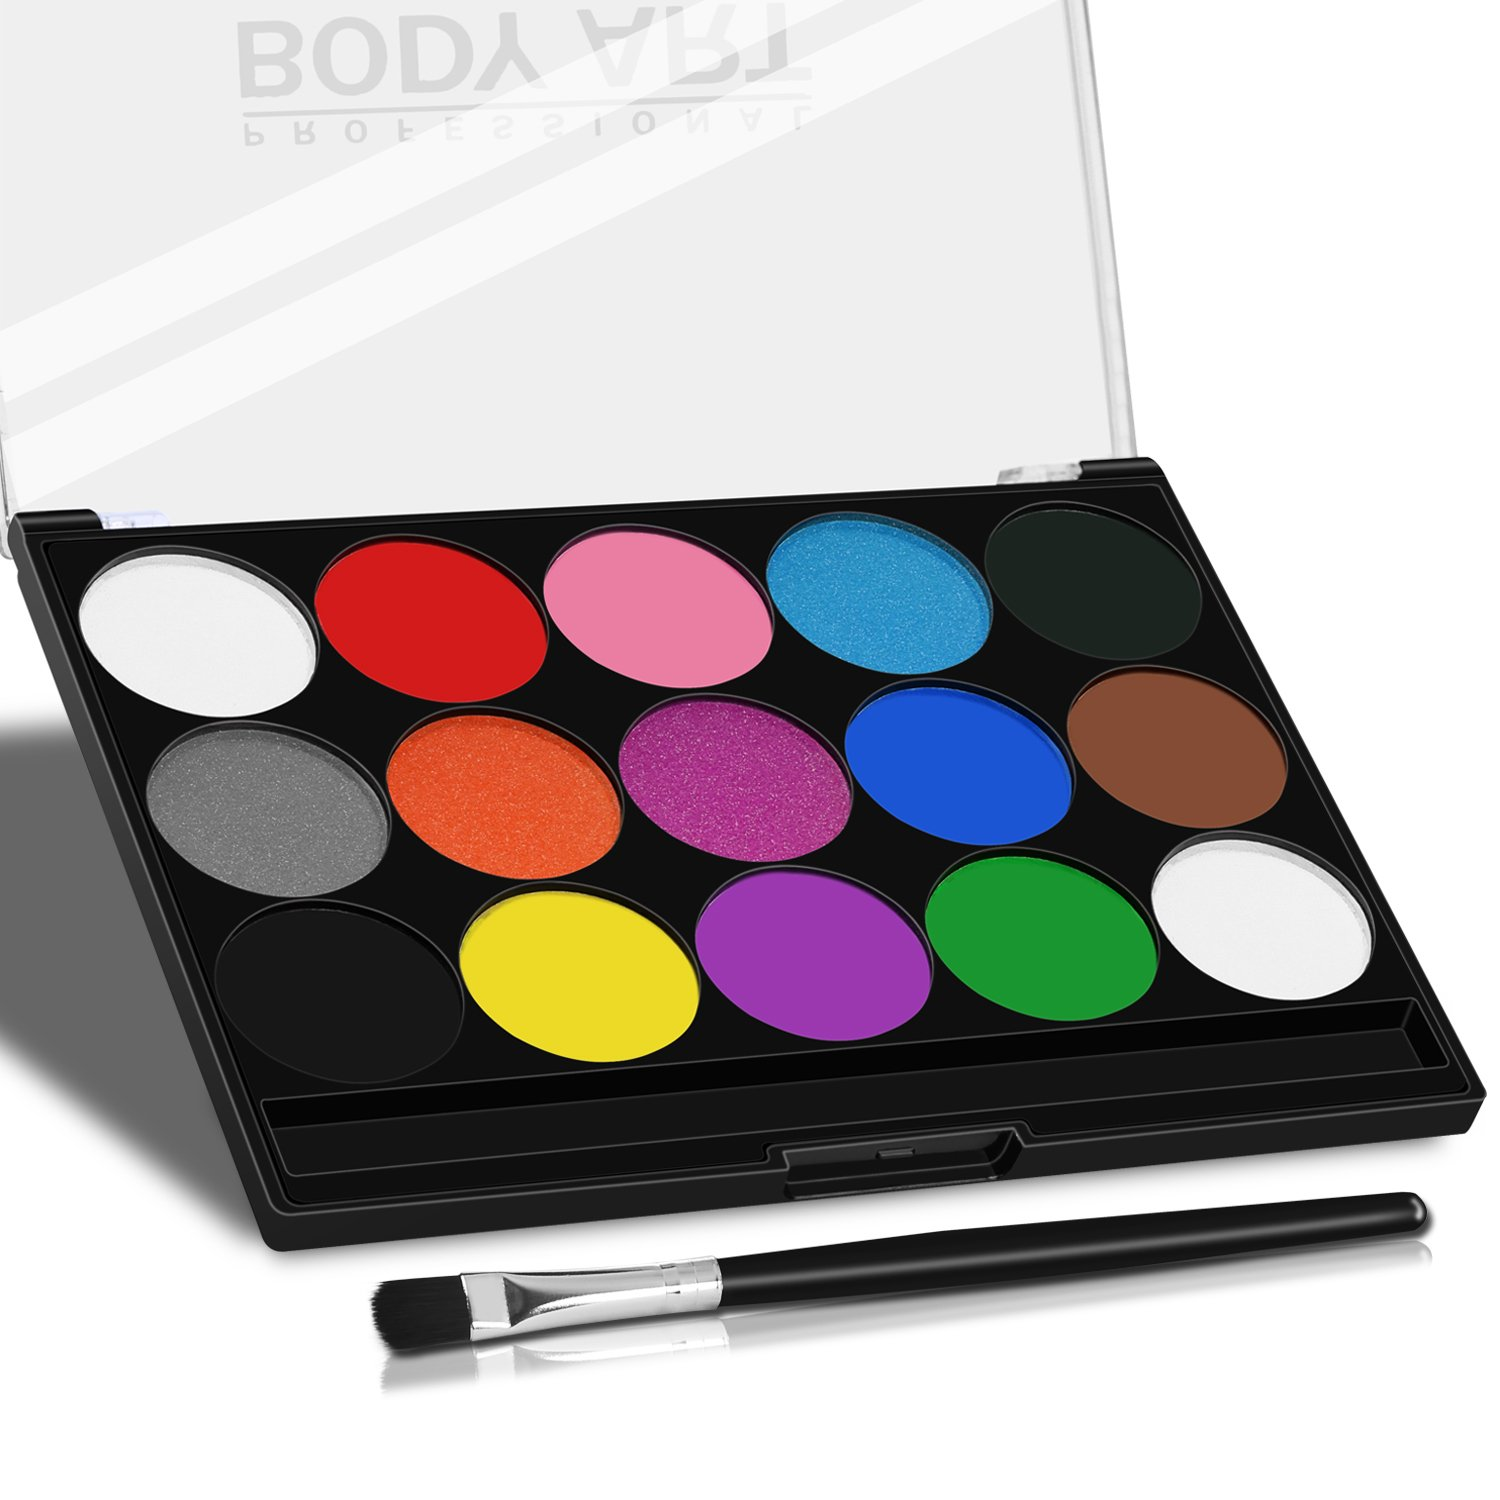 schminkf Arben ultimatives Party Set Xpassion sicheres nichtto xisches face-painting neoprene fronte corpo pittura Set di 1 Pennelli 15 colori per bambini Parties Body Painting Halloween make up XBS-fp